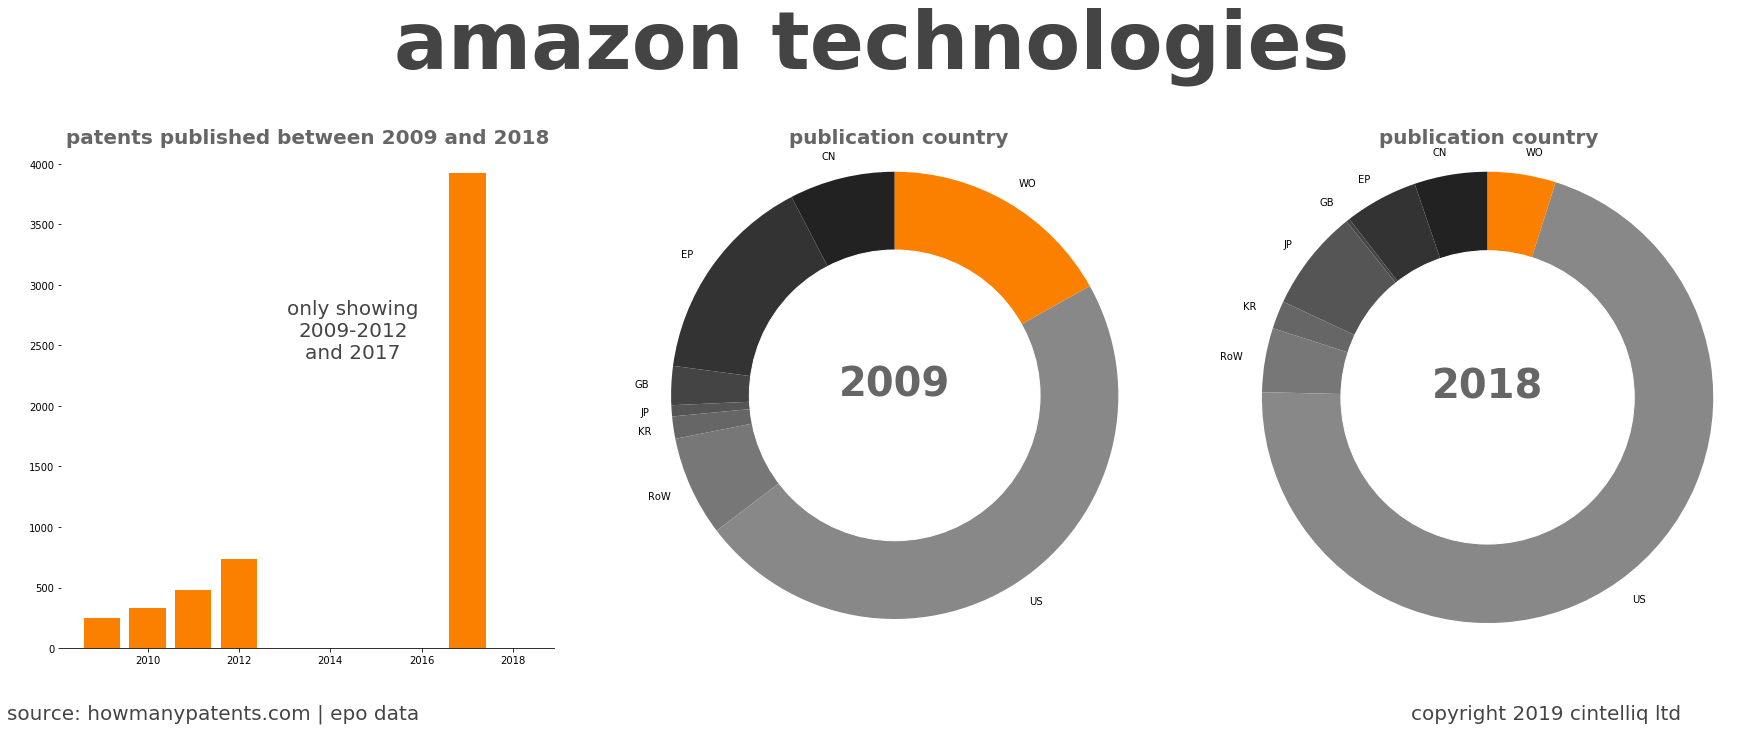 summary of patents for Amazon Technologies